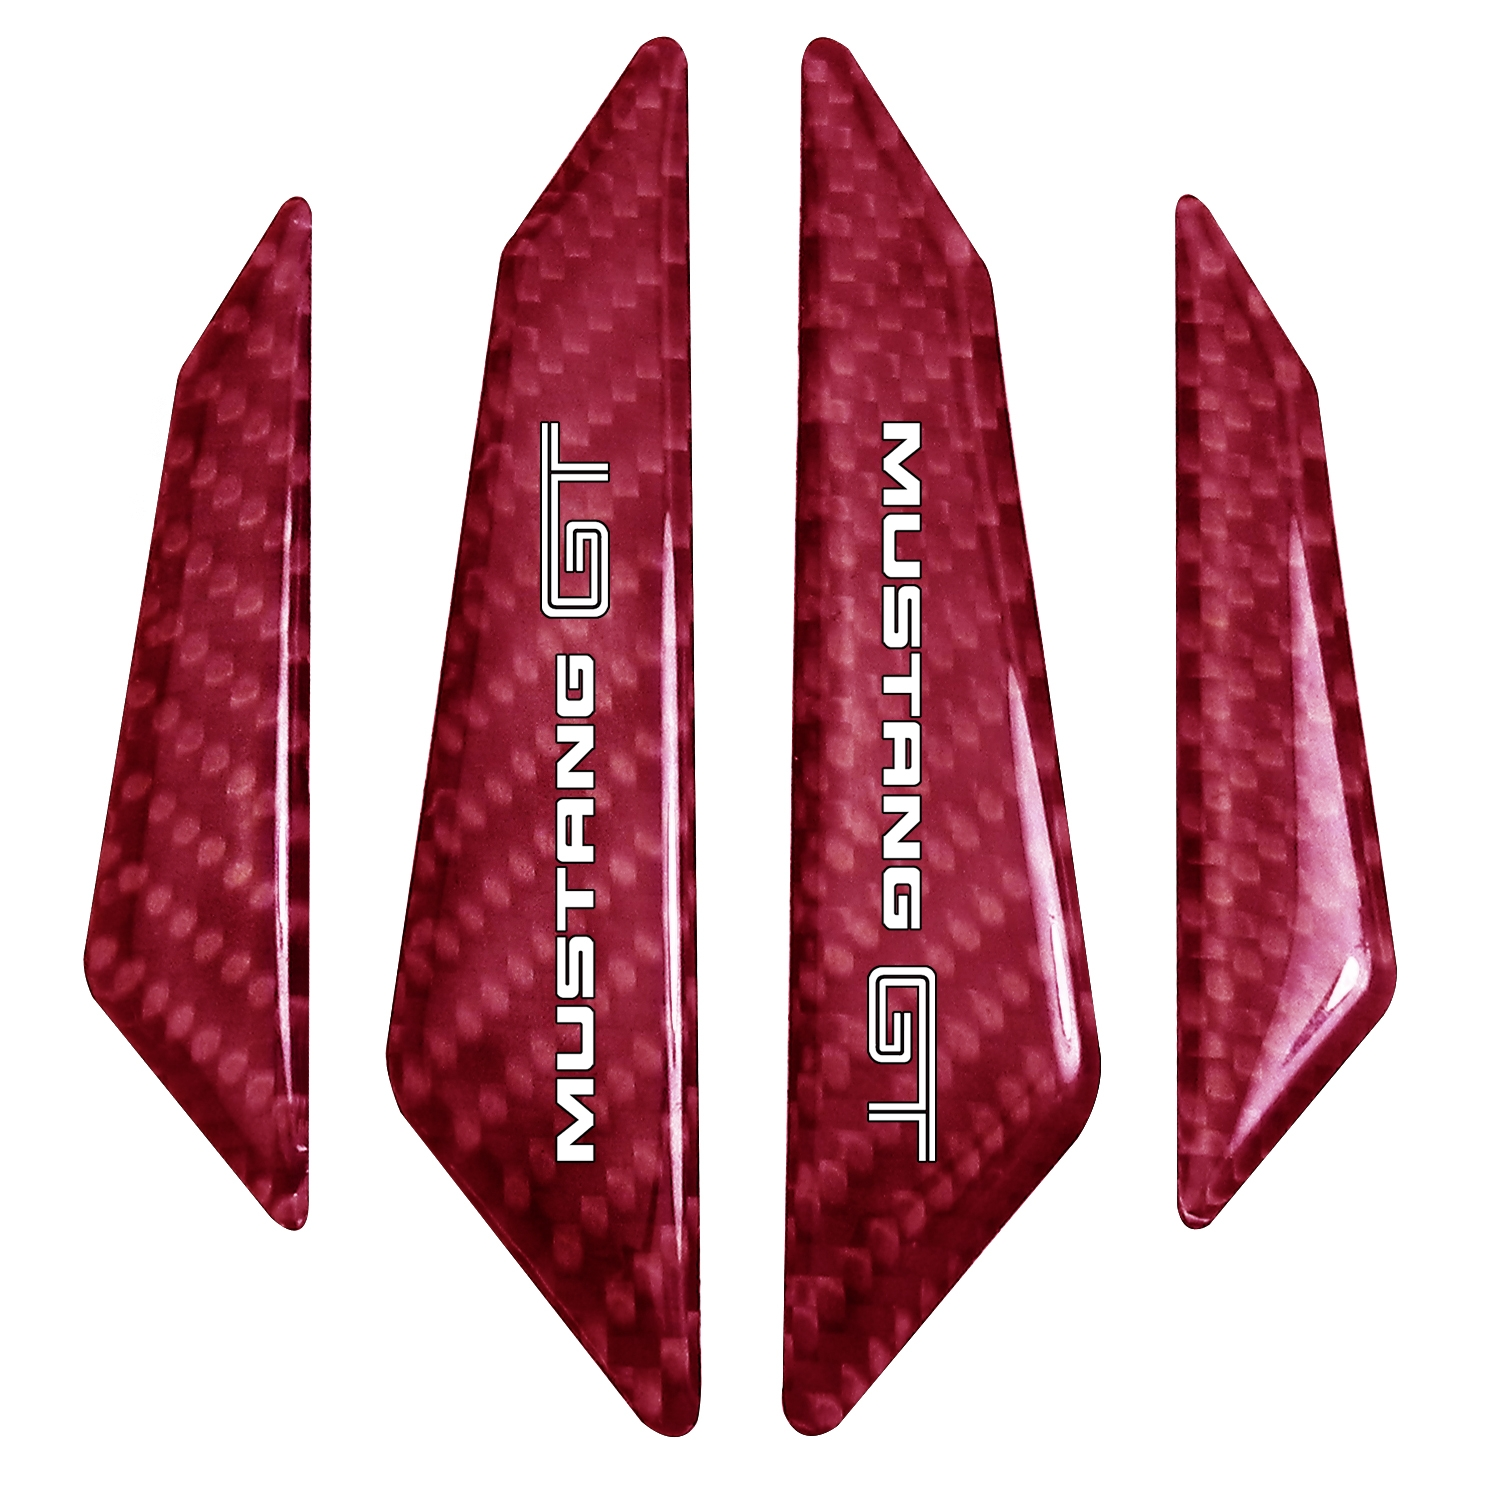 Ford Mustang GT Real Red Carbon Fiber Door Edge Guard Decal